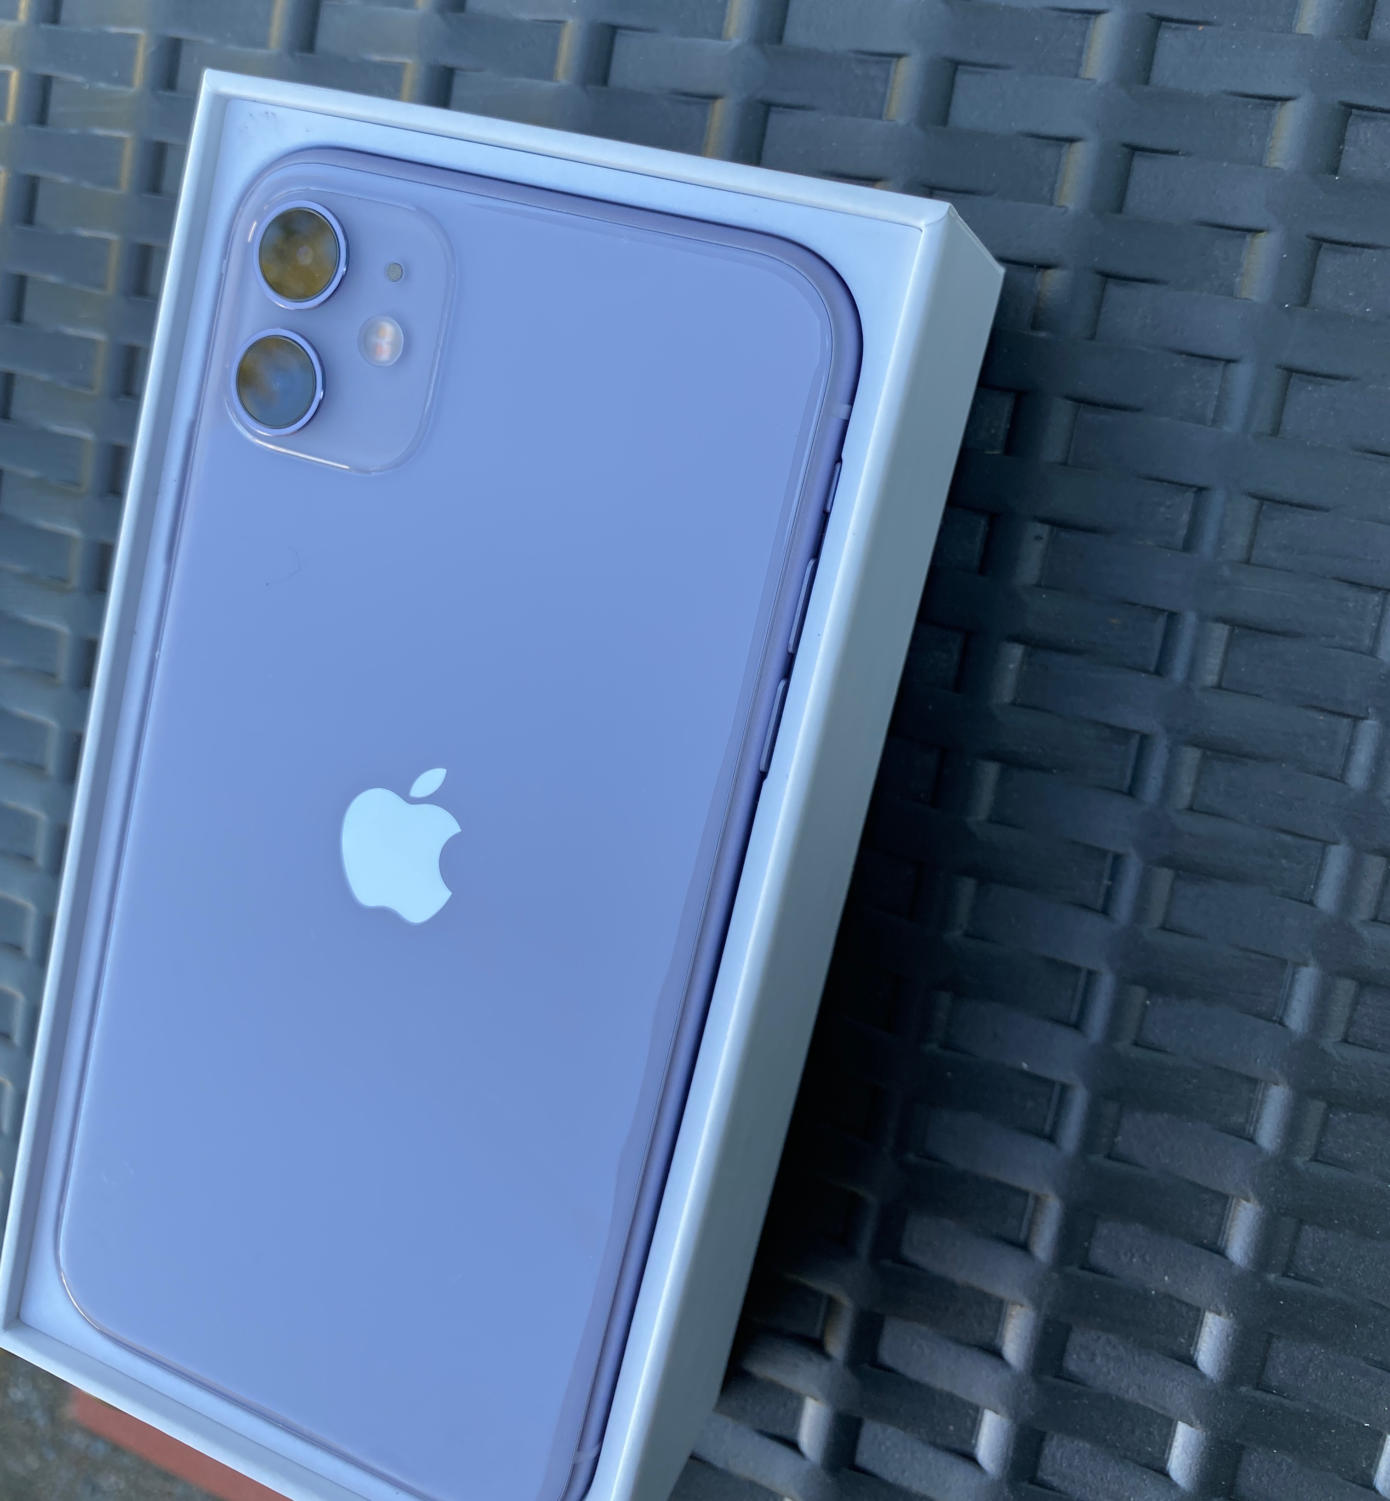 The iPhone 11 in purple